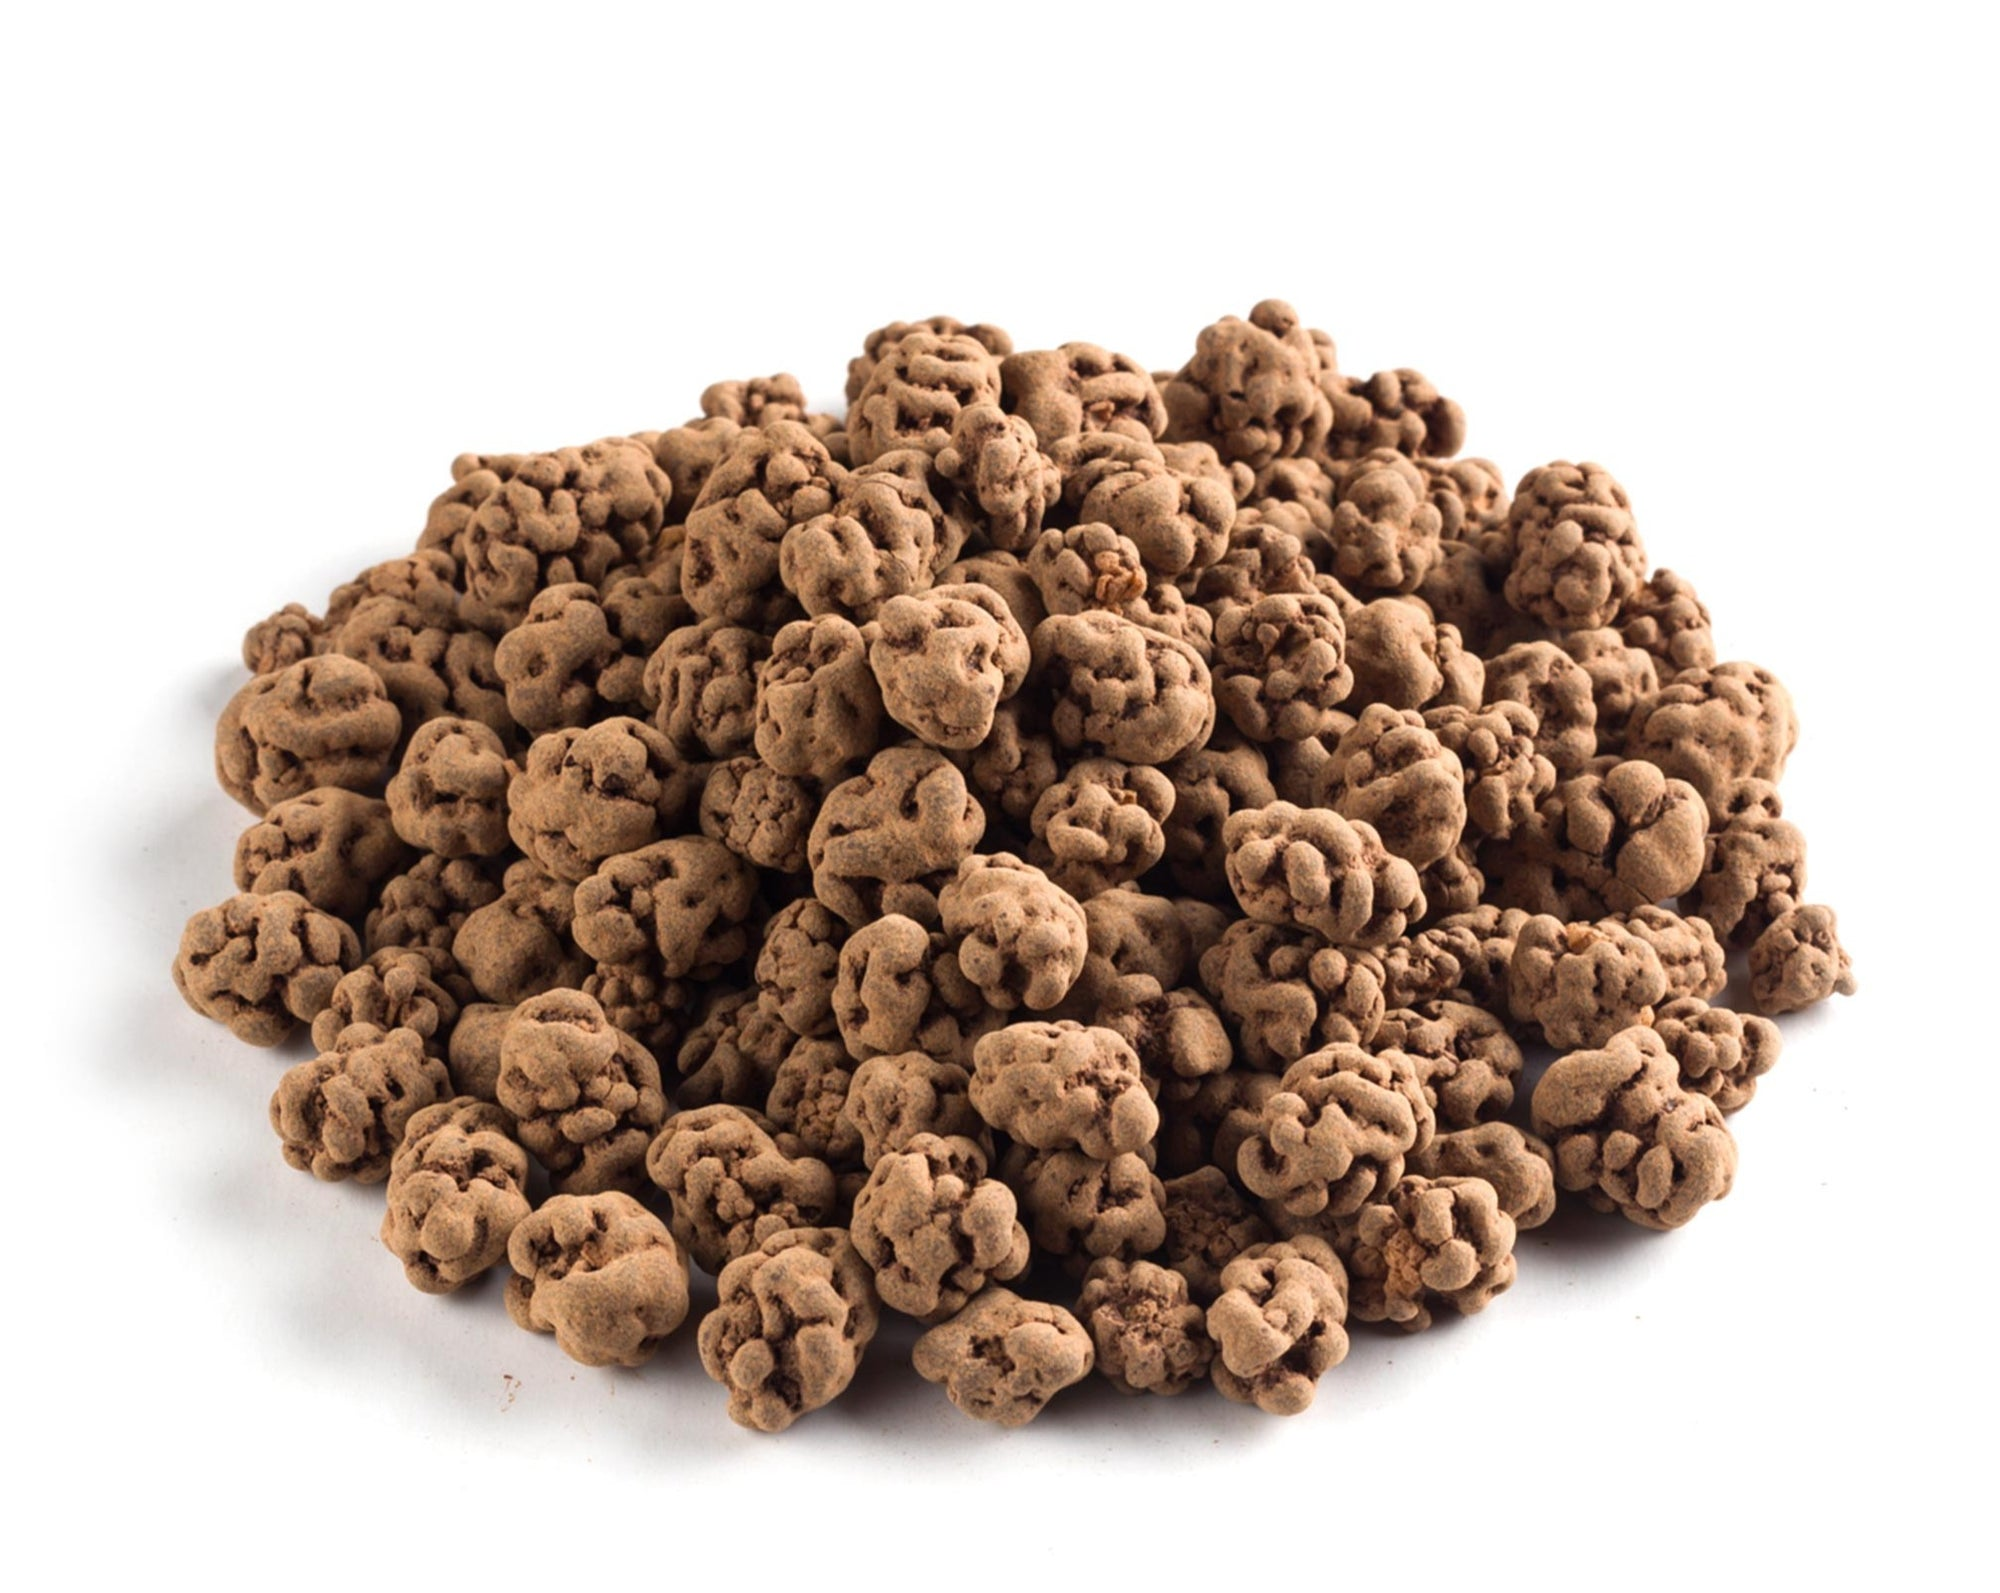 Raw Chocolate Mulberries 450g-1kg - The Raw Chocolate Company